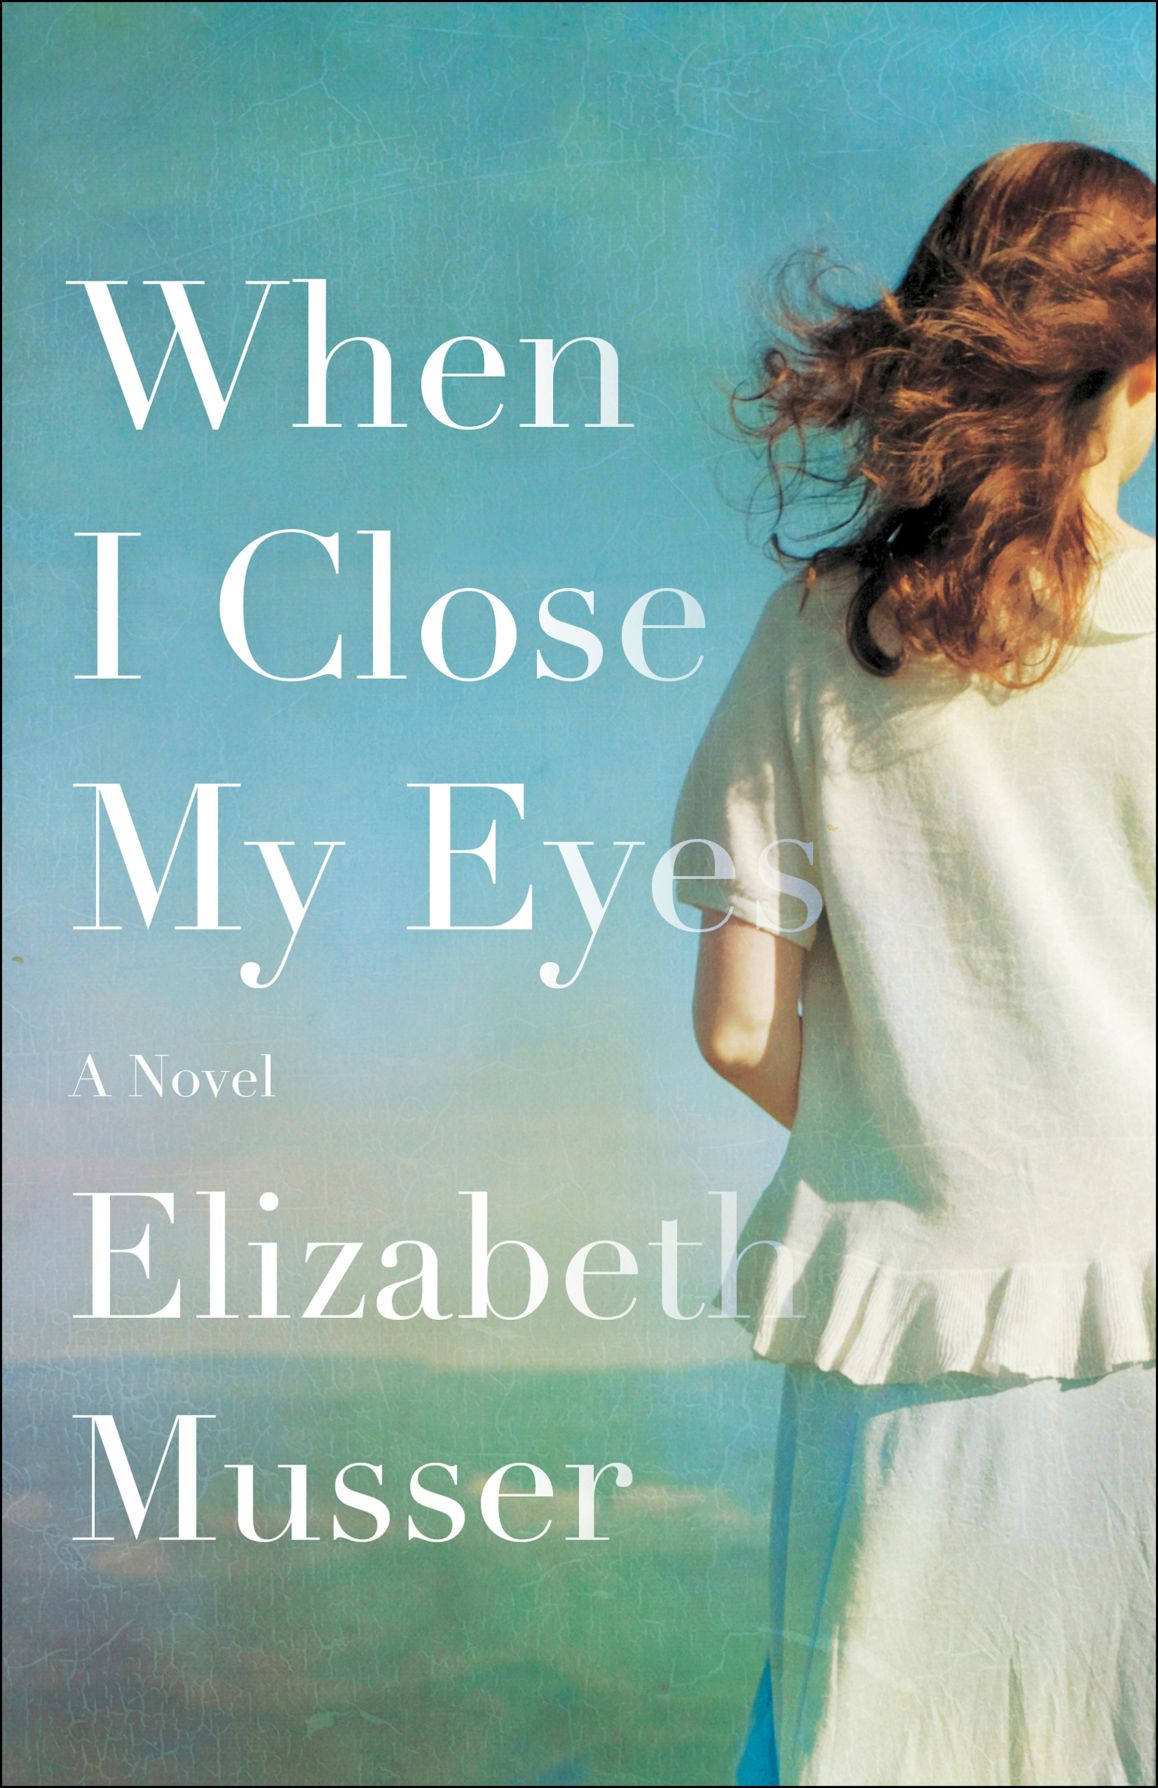 103019_MNS_Musser_book_001 When I Close My Eyes cover